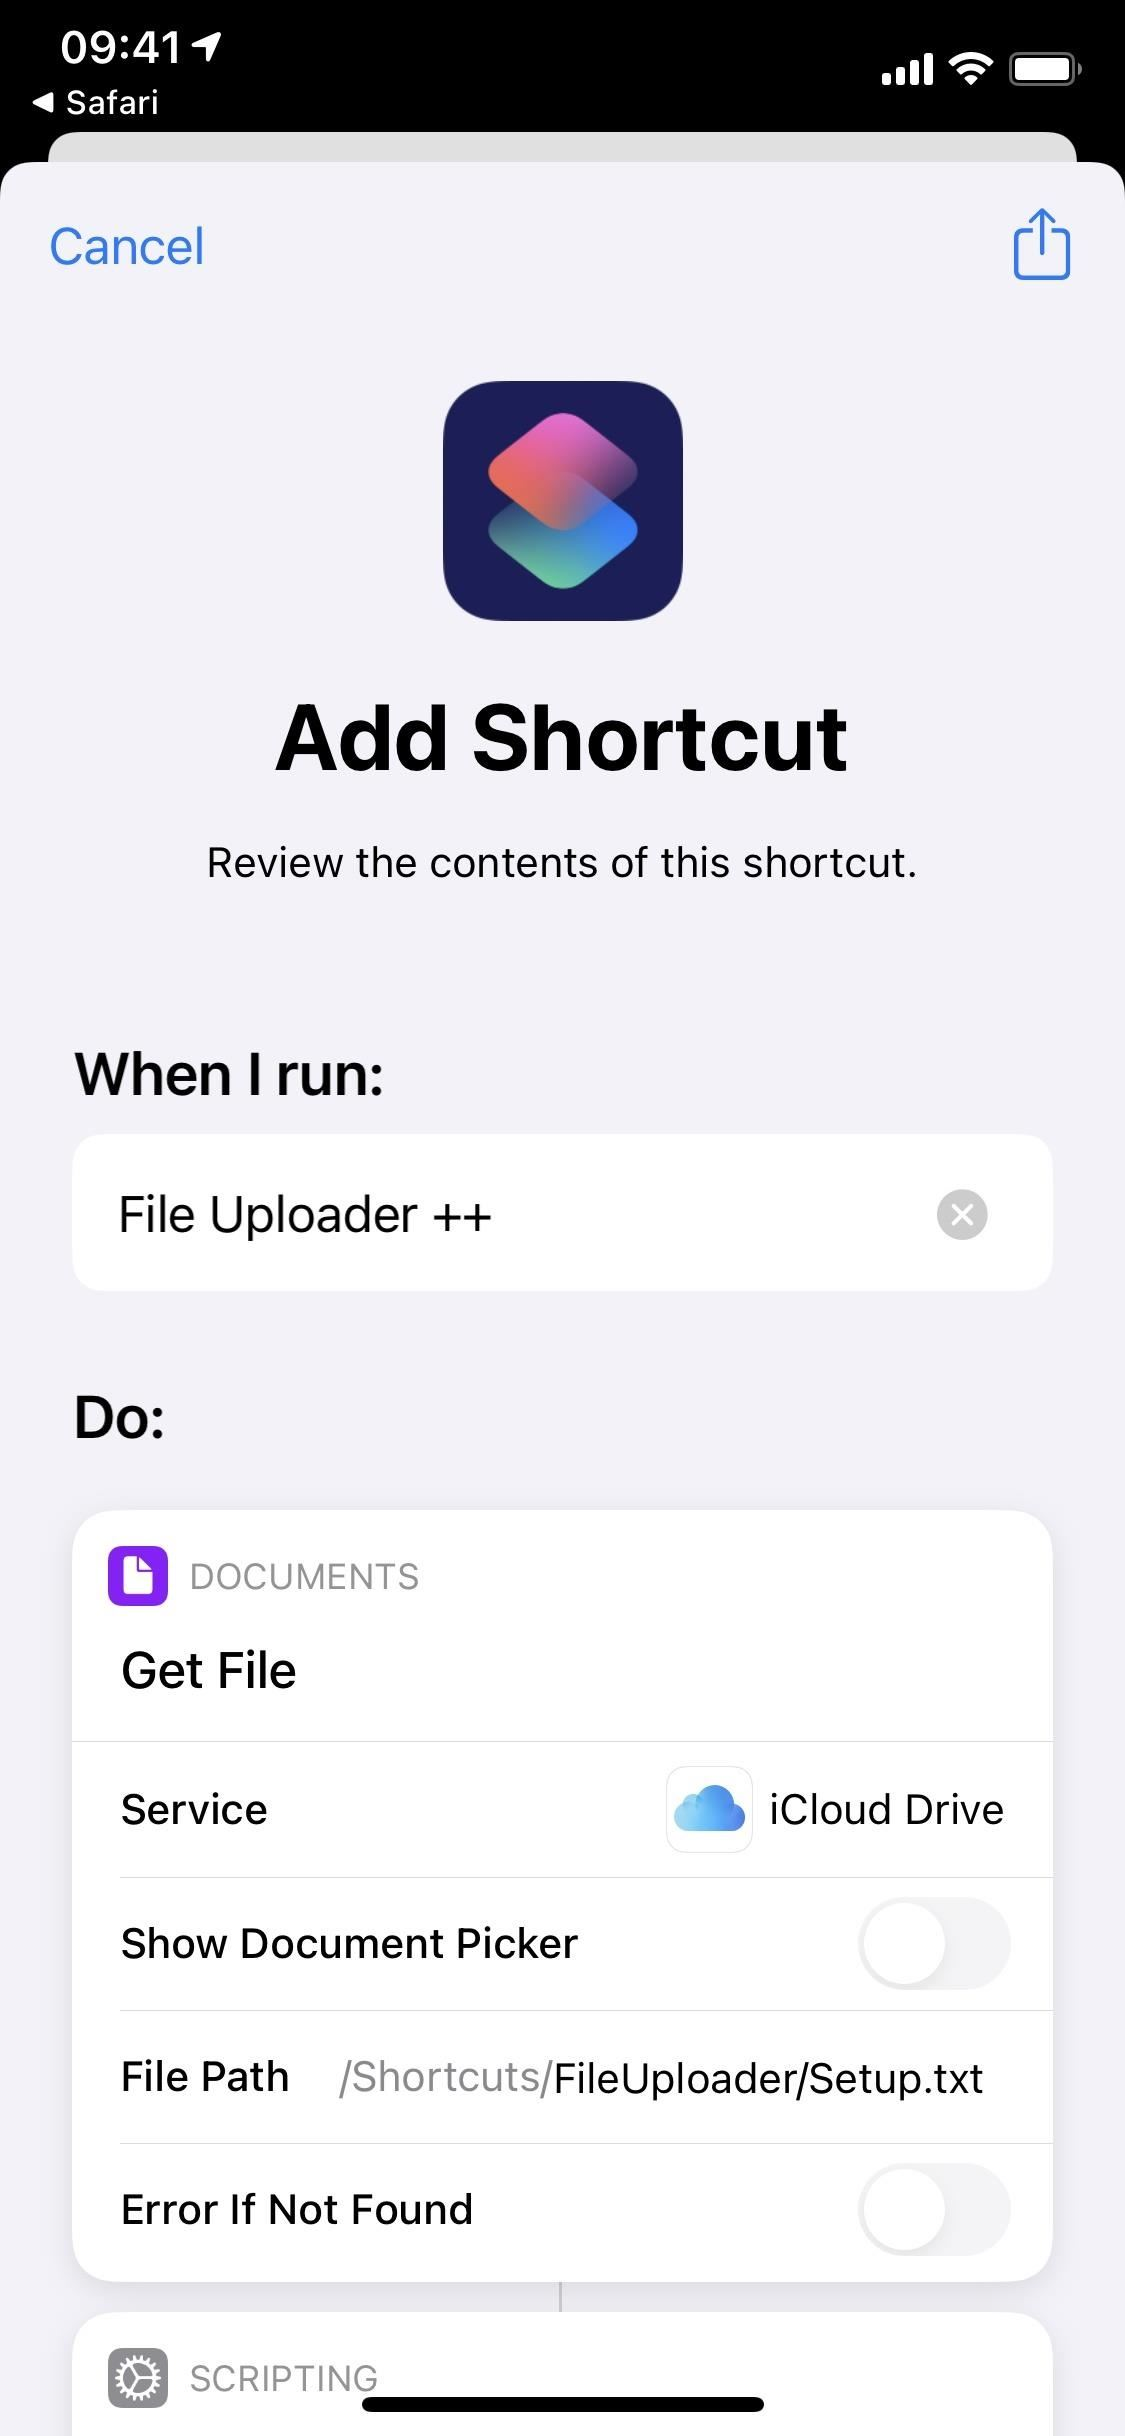 The Easy Way to Upload Files Anonymously from Your iPhone So They Can't Be Traced Back to You